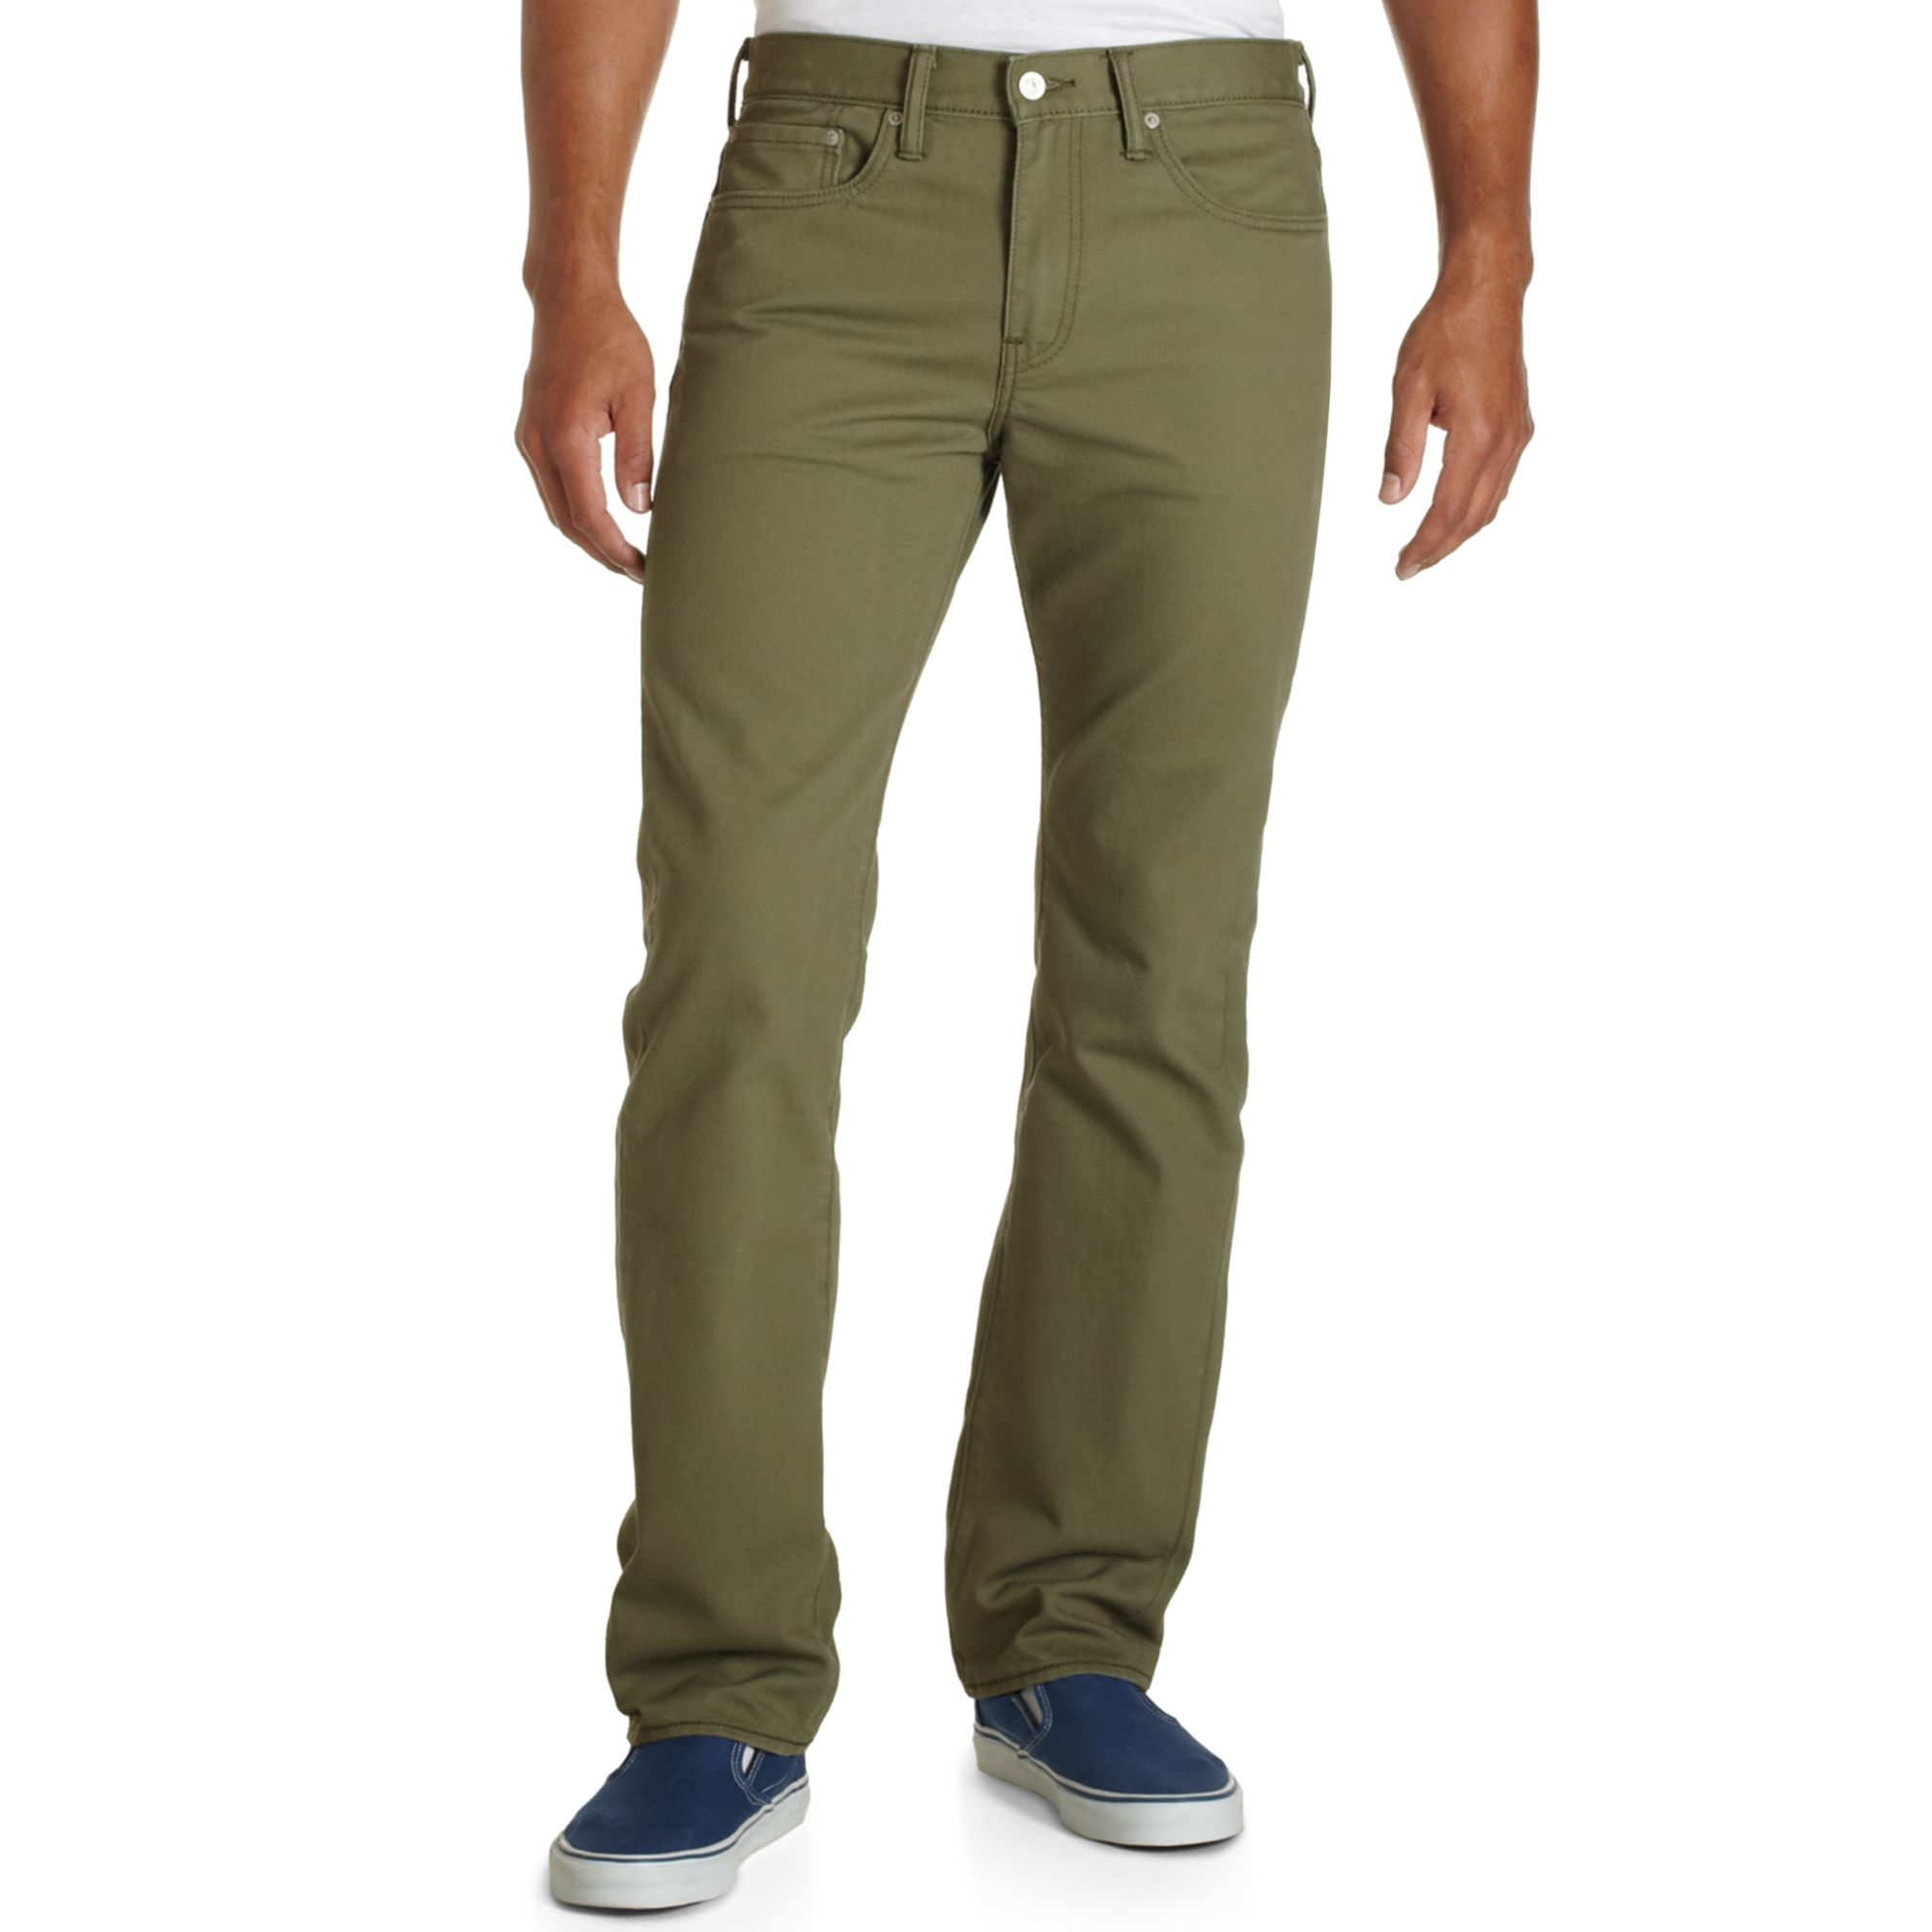 Men's Pants, Twill Pants and Wool Pants from humorrmundiall.ga Look your best in Men's pants from humorrmundiall.ga Our selection includes Men's twill pants, wool pants, easy-care styles and much more, all made from sturdy, comfortable fabrics with fine workmanship.